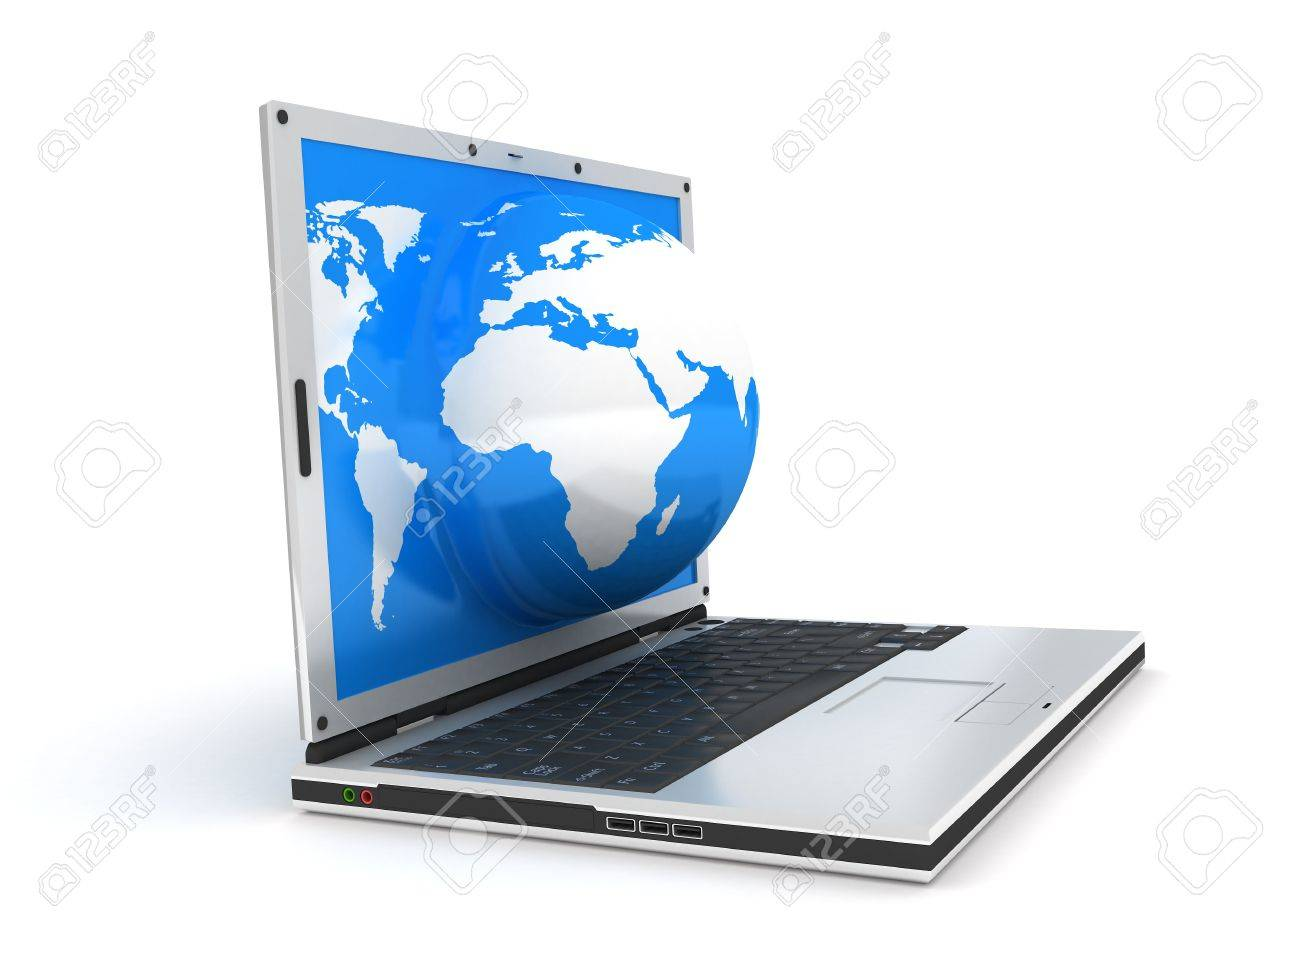 abstract presentation of the internet on earth Stock Photo - 5998448